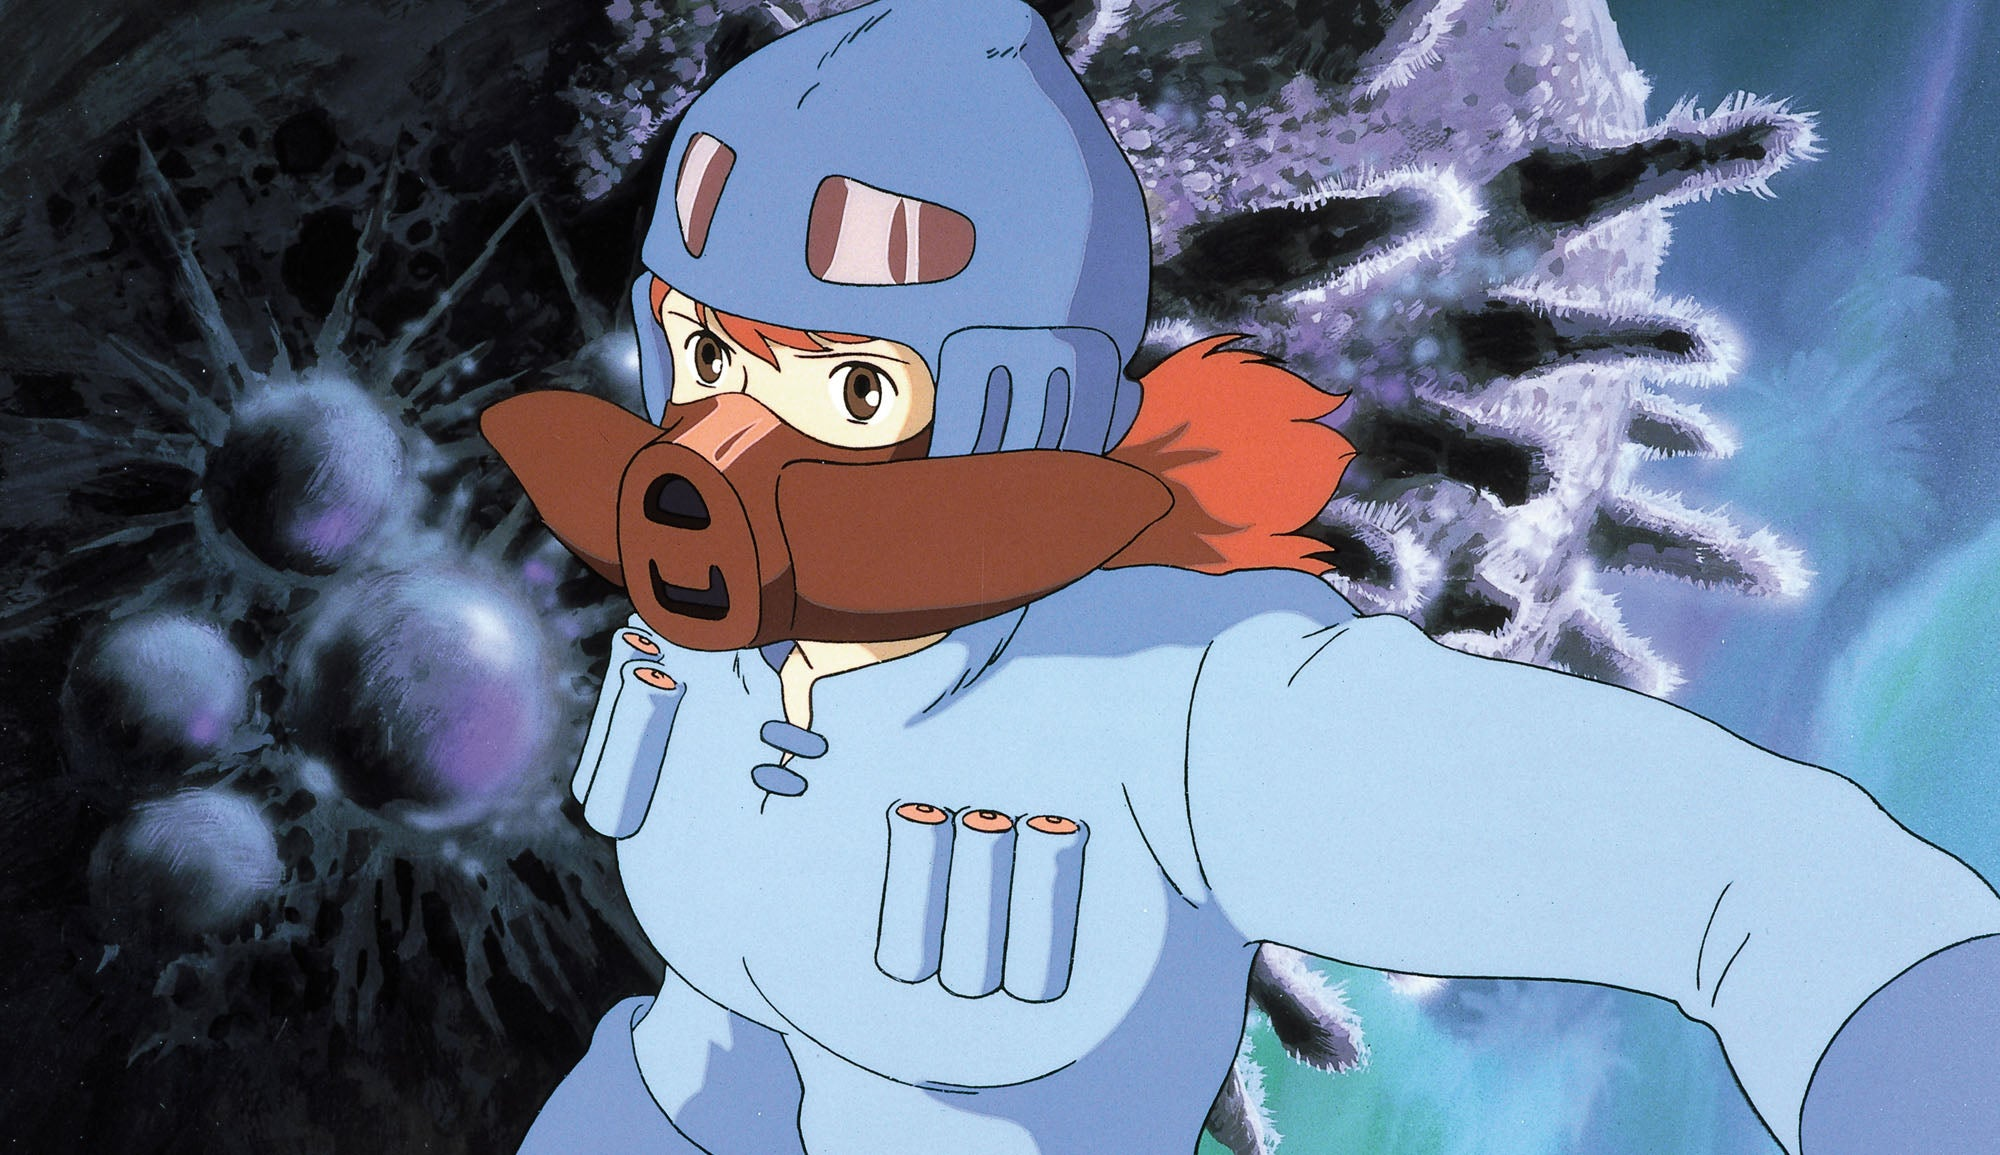 Hayao Miyazaki Wants You To Know Why Nausicaä Has Large Breasts